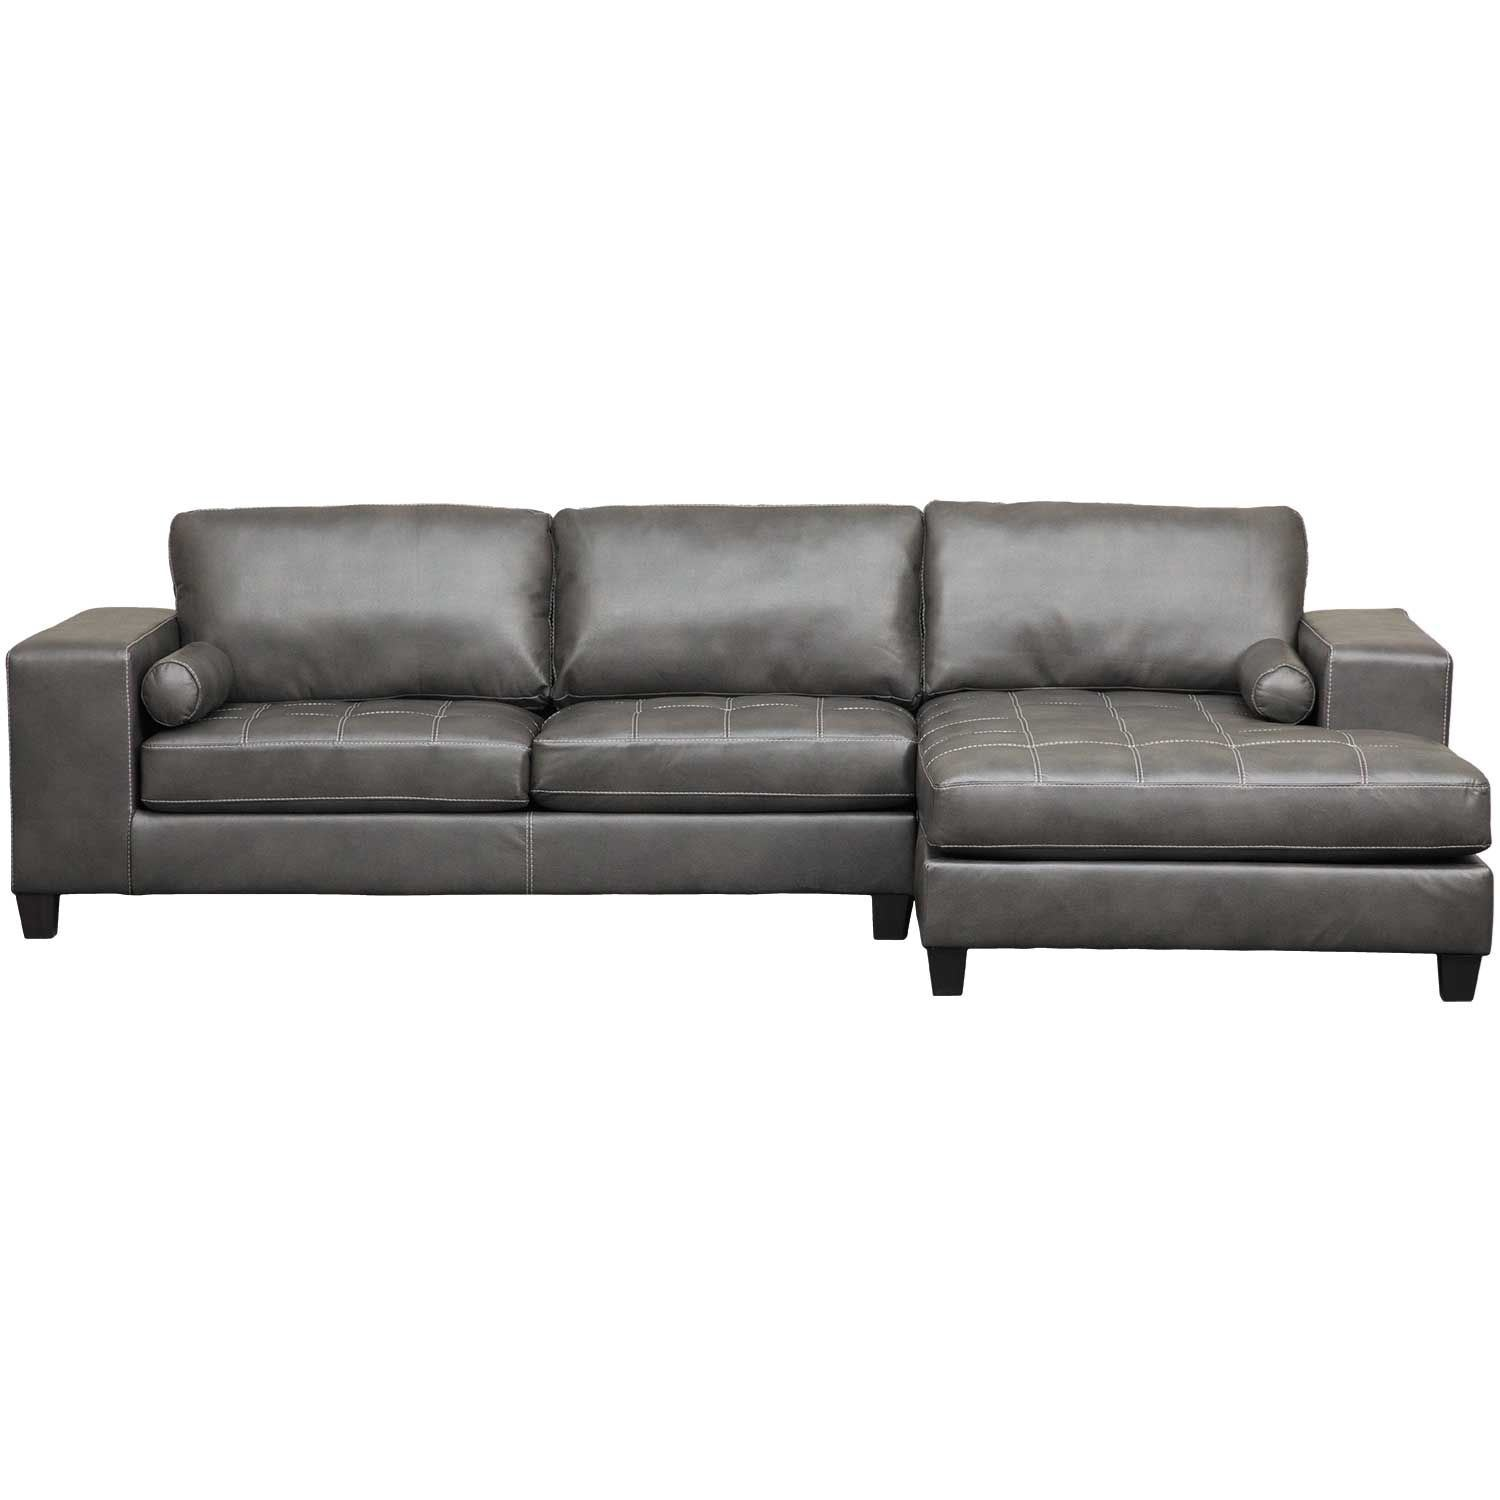 Nokomis 2 Piece Sectional with RAF Chaise | 8770117/8770166 | Ashley ...